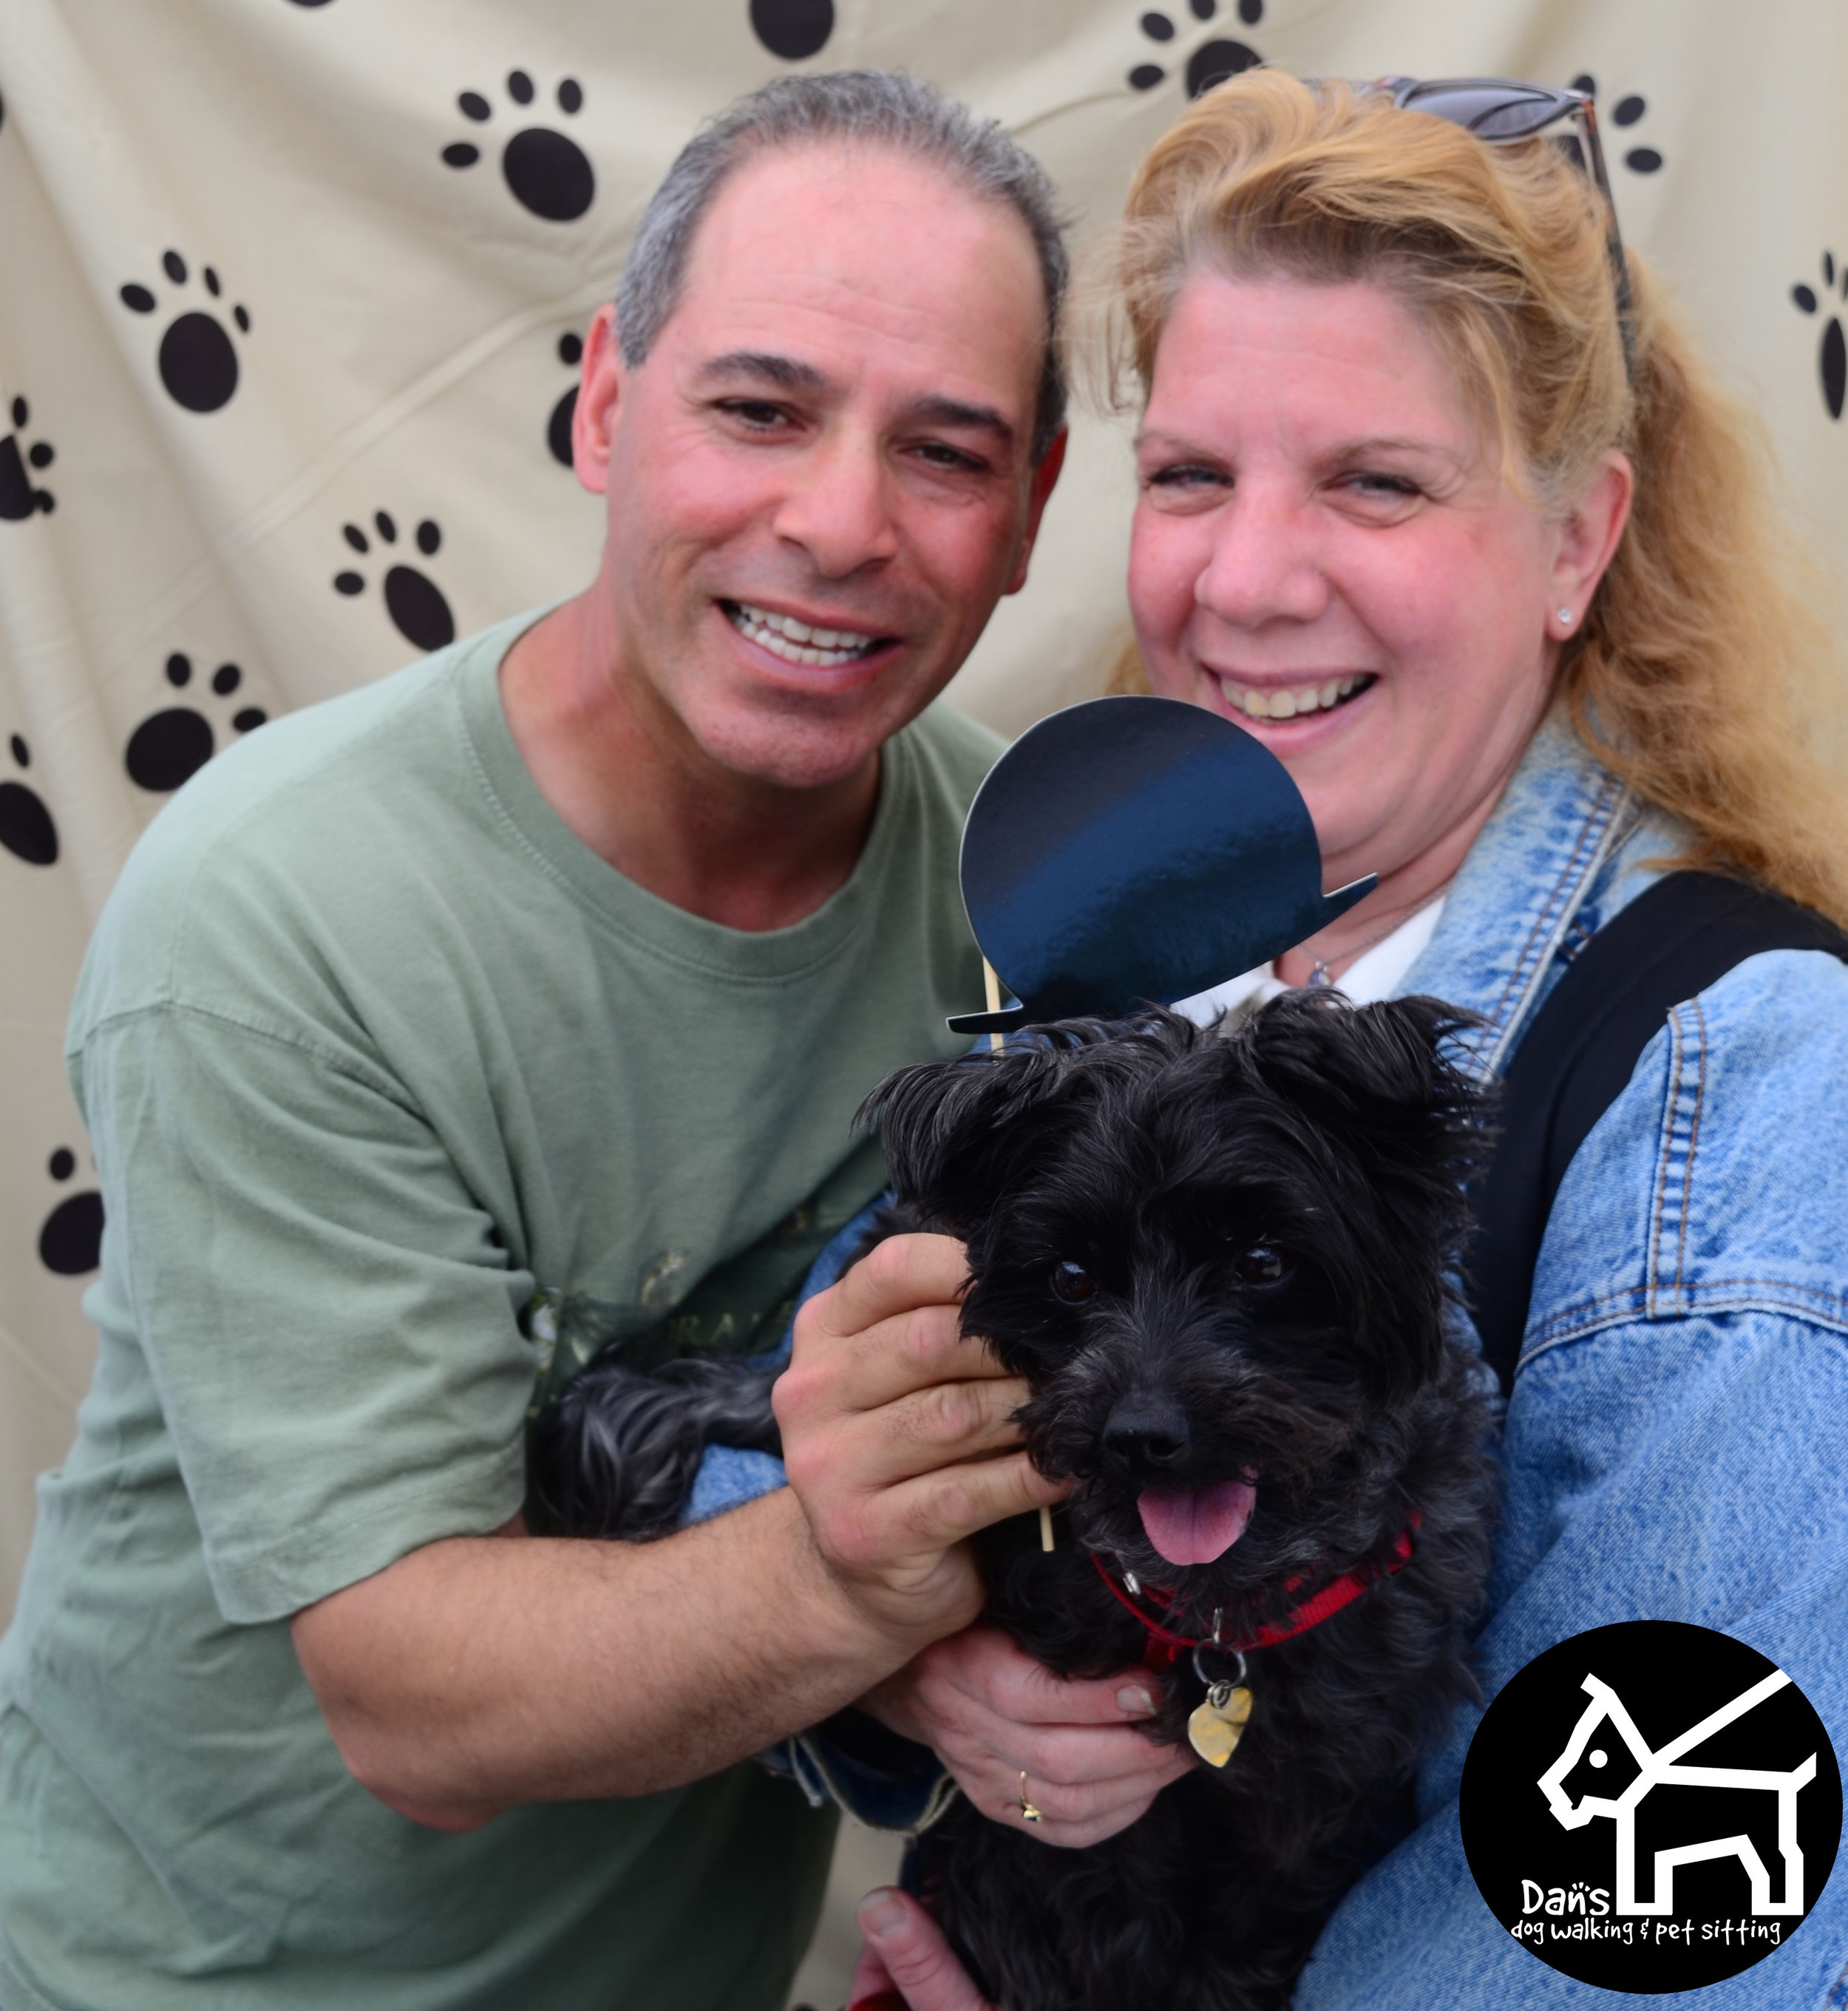 Can't go wrong with a top hat at Dan's Dog Walking and Pet Sitting Doggie Photo Booth at Harbor Fest 2015.jpg